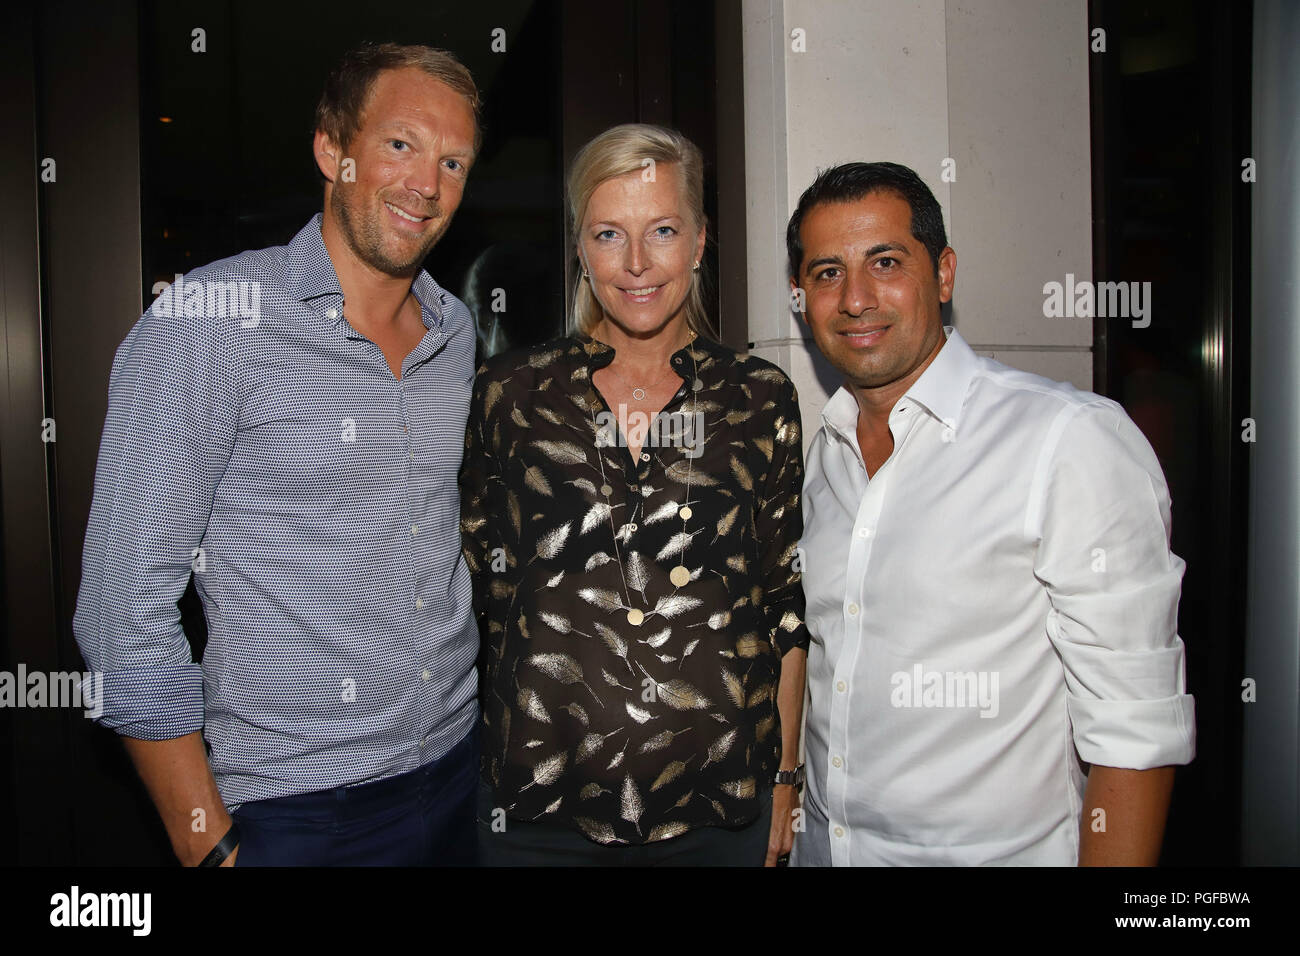 Henriks Hamburg Guests Attending The Players Party Of The German Open 2018 In The